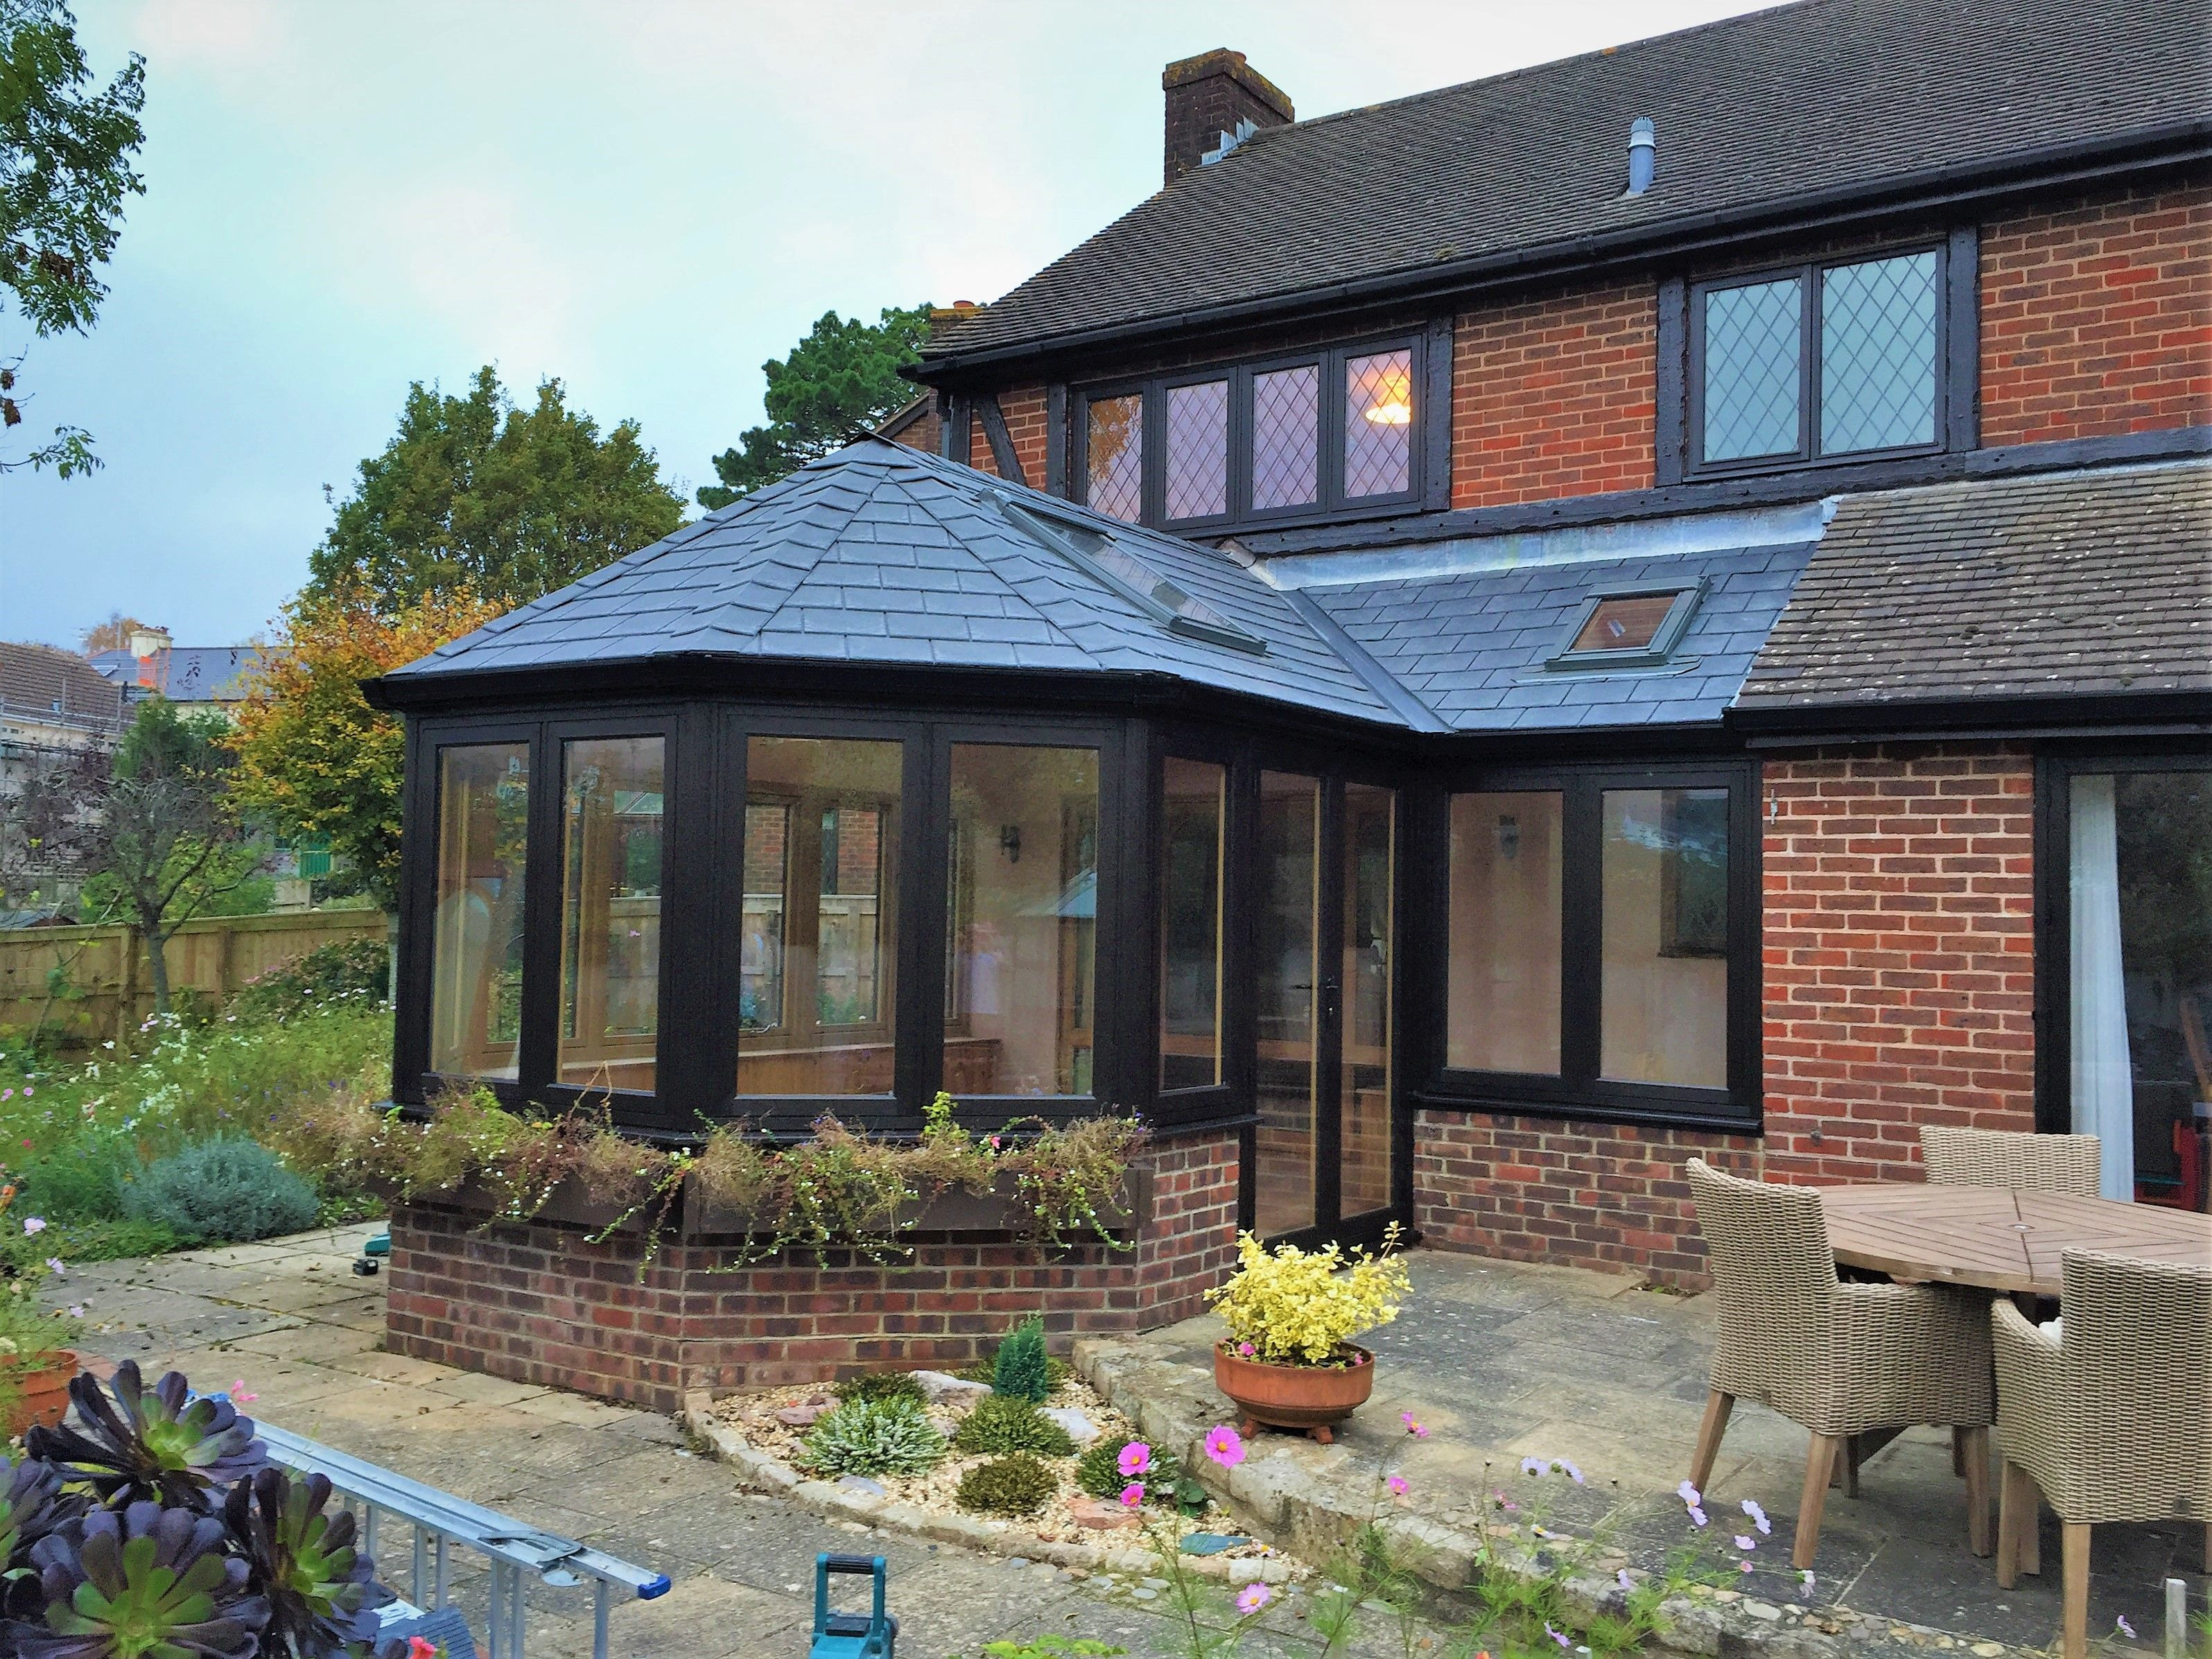 Bespoke Orangeries from | Orangery, Residences, Outdoor ... on Bespoke Outdoor Living id=20167